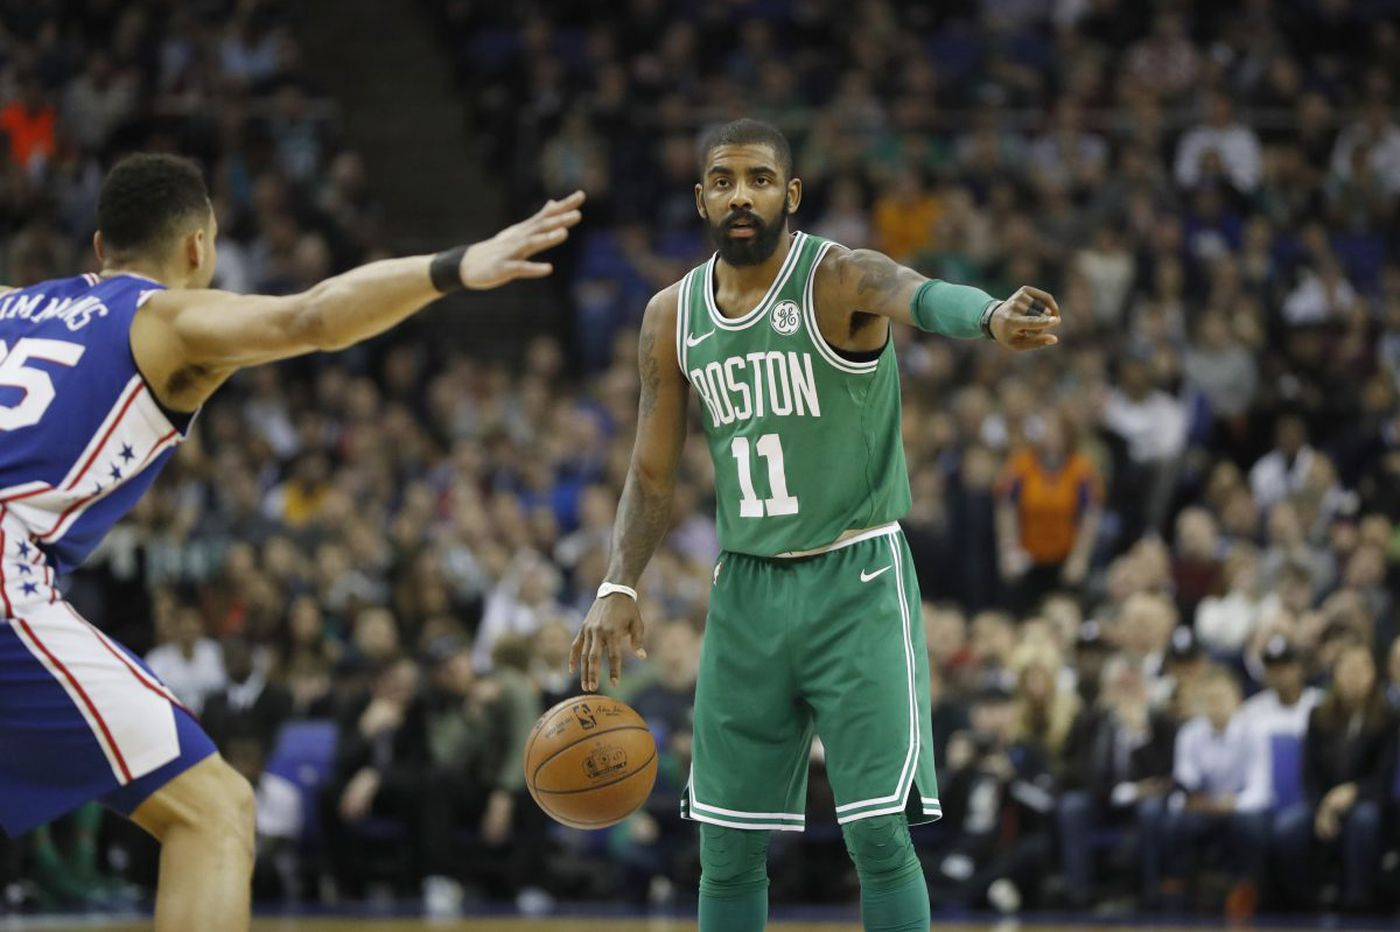 Social media reaction to the Sixers-Celtics game in London